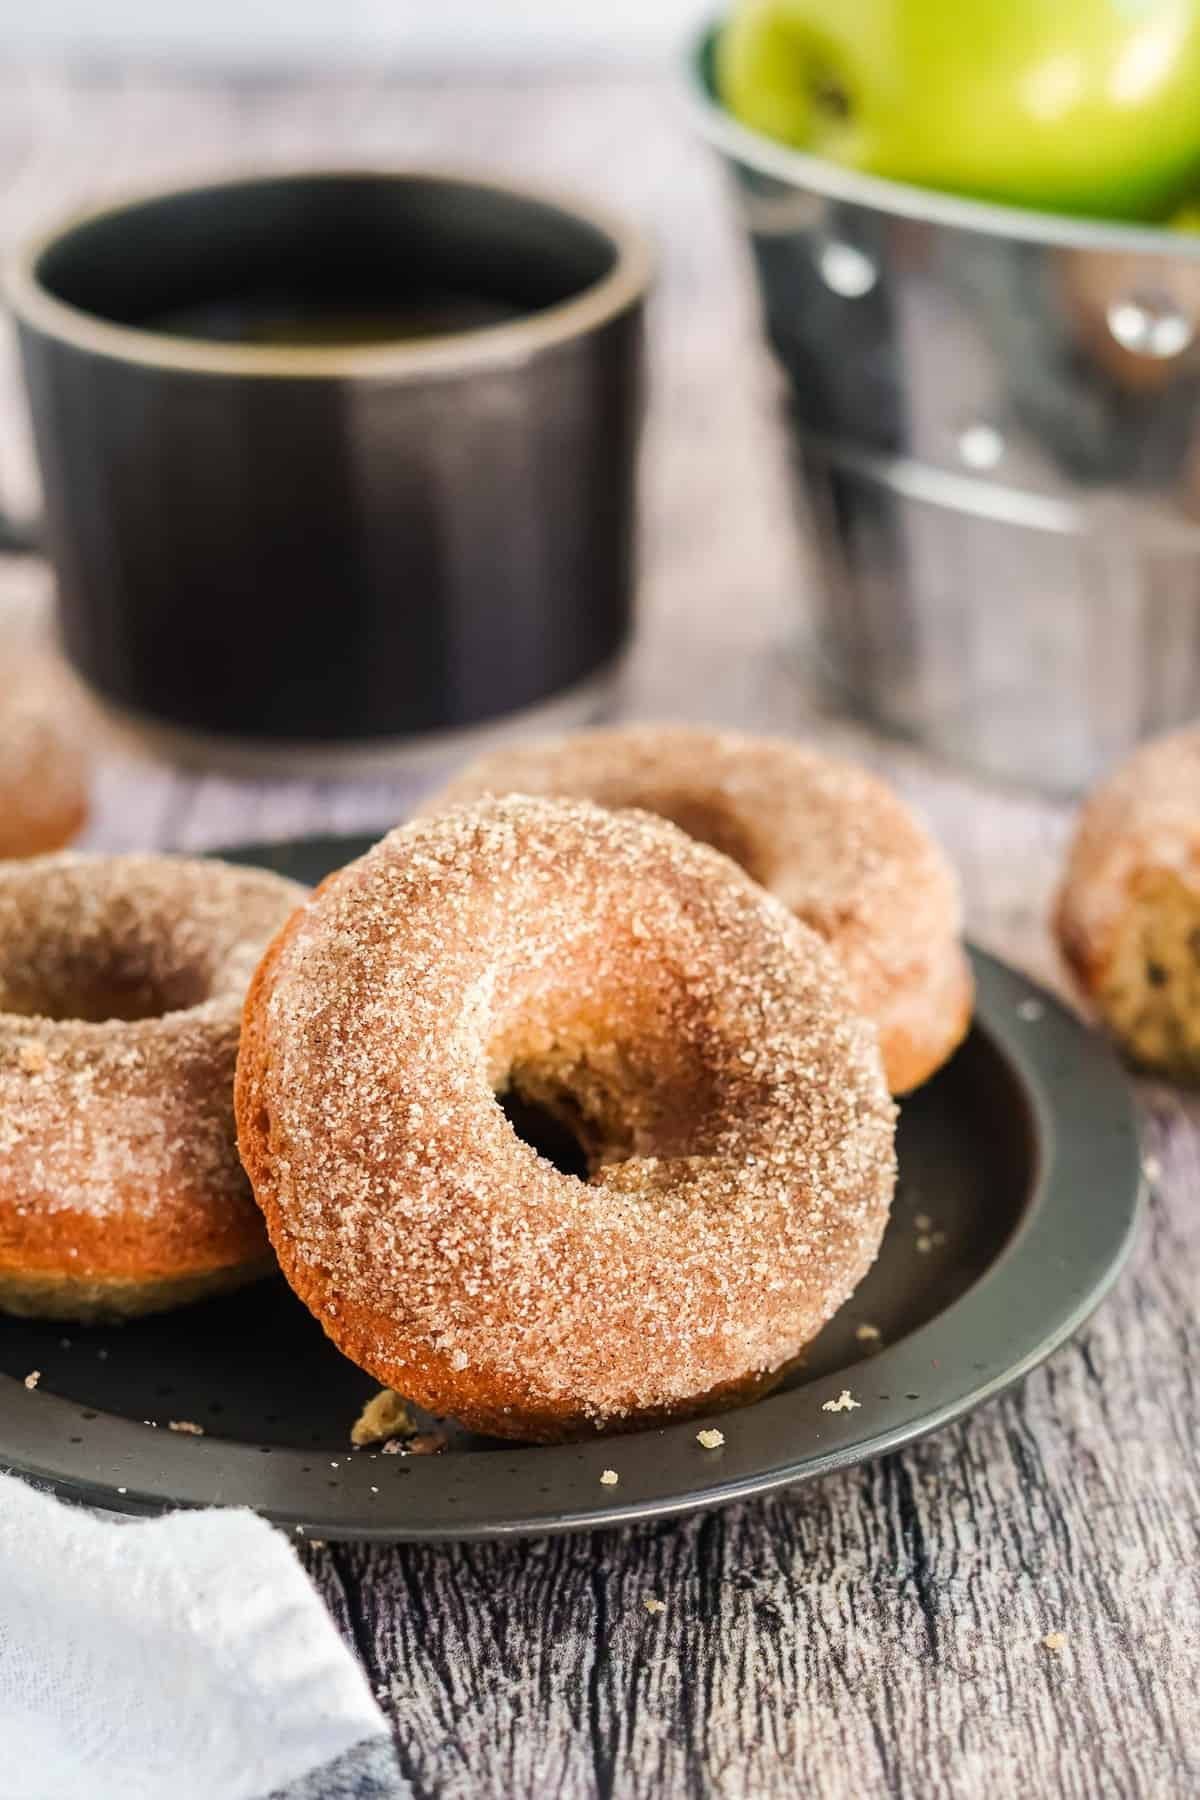 Donuts on a black plate with coffee in the background.